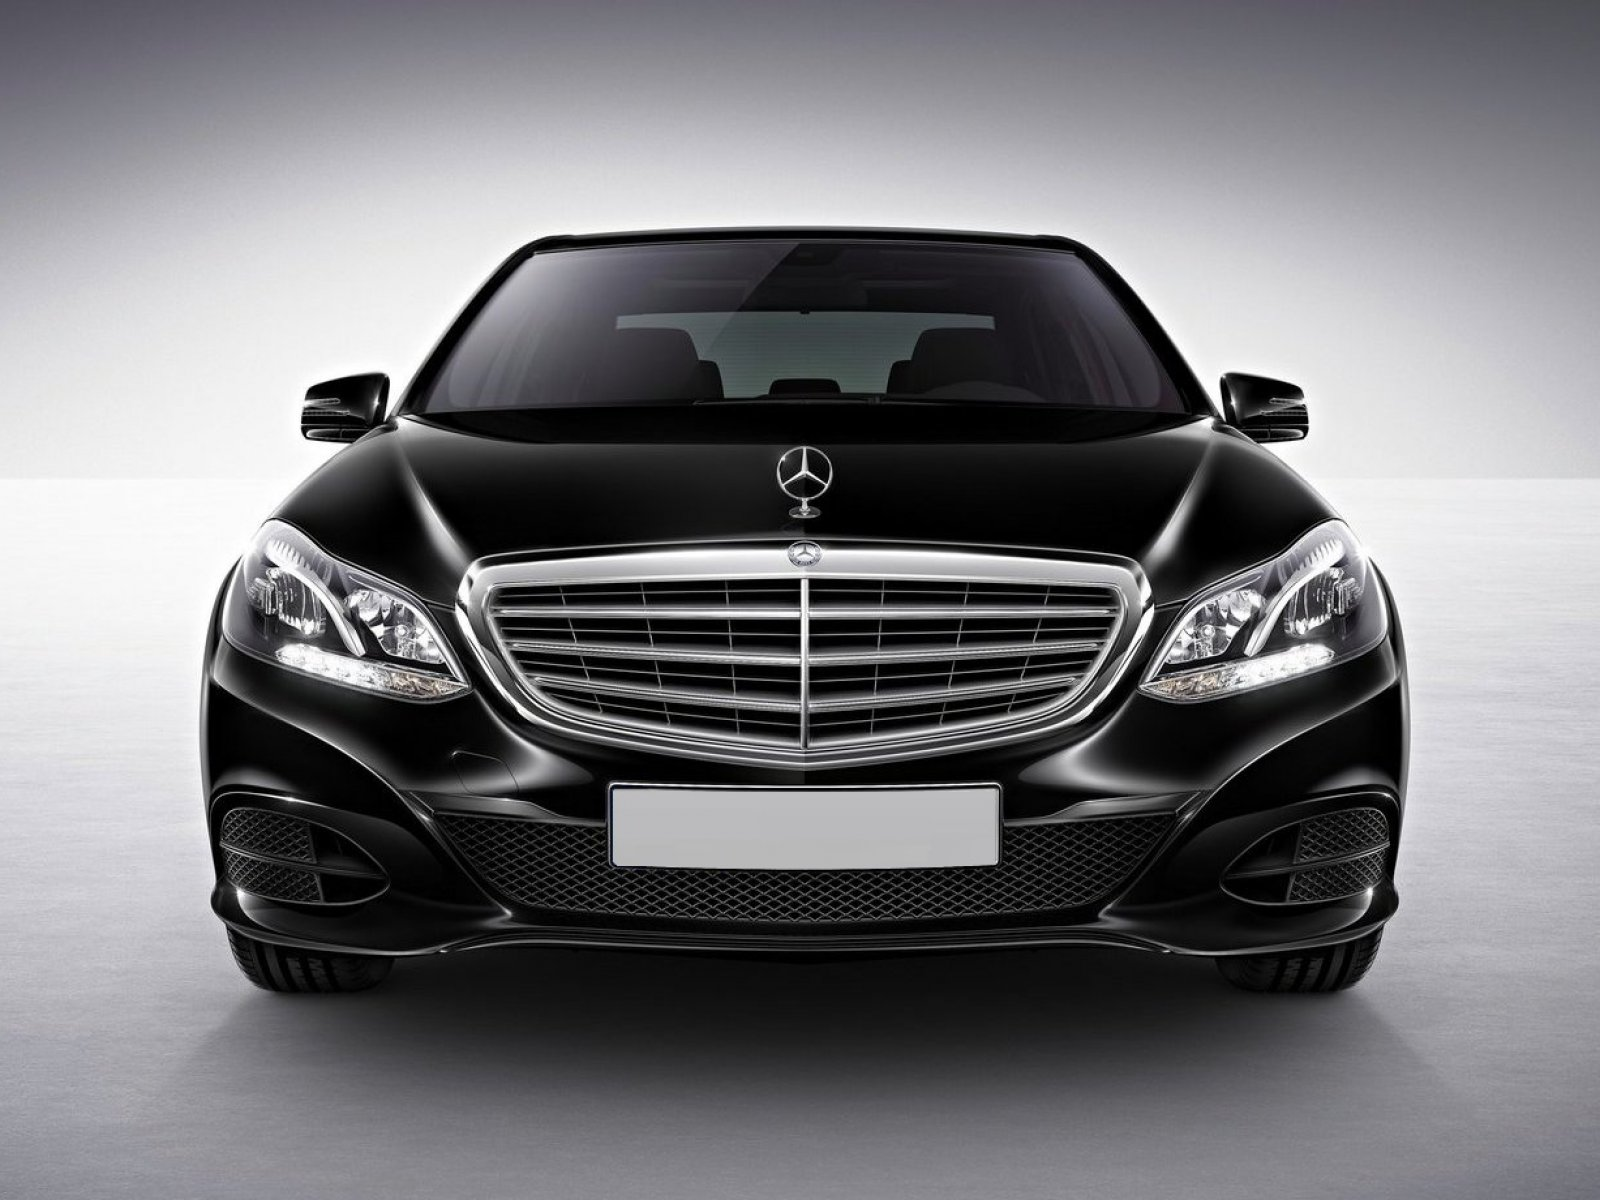 Mercedes Benz E Class 2016 Exterior Front End - Facelift